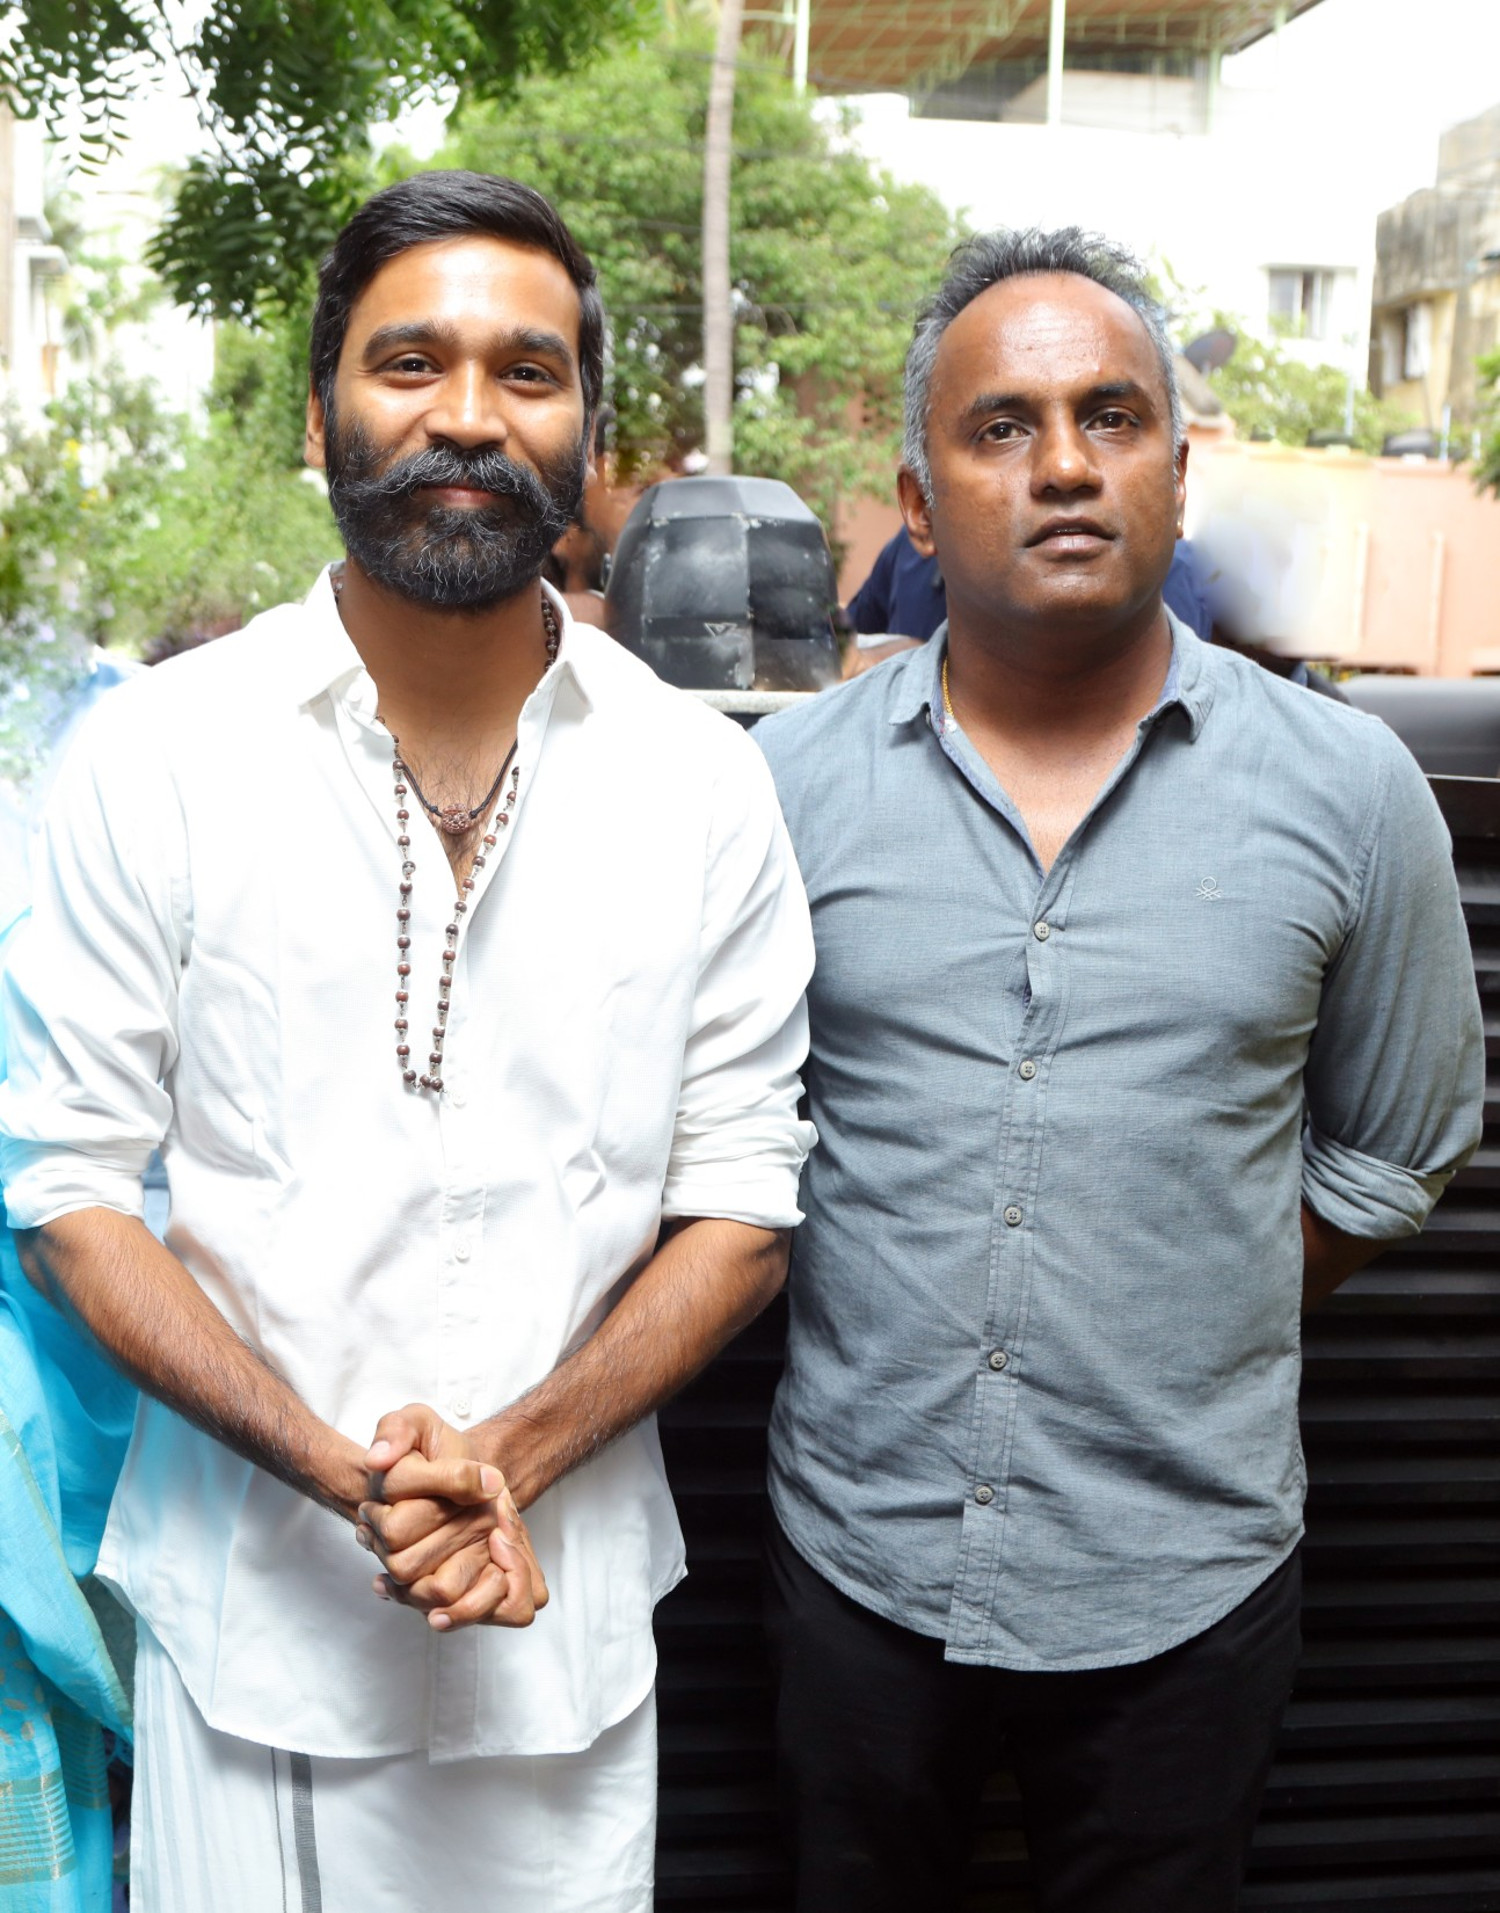 YNOT Studios' Production 18 starring Dhanush and directed by Karthik Subbaraj